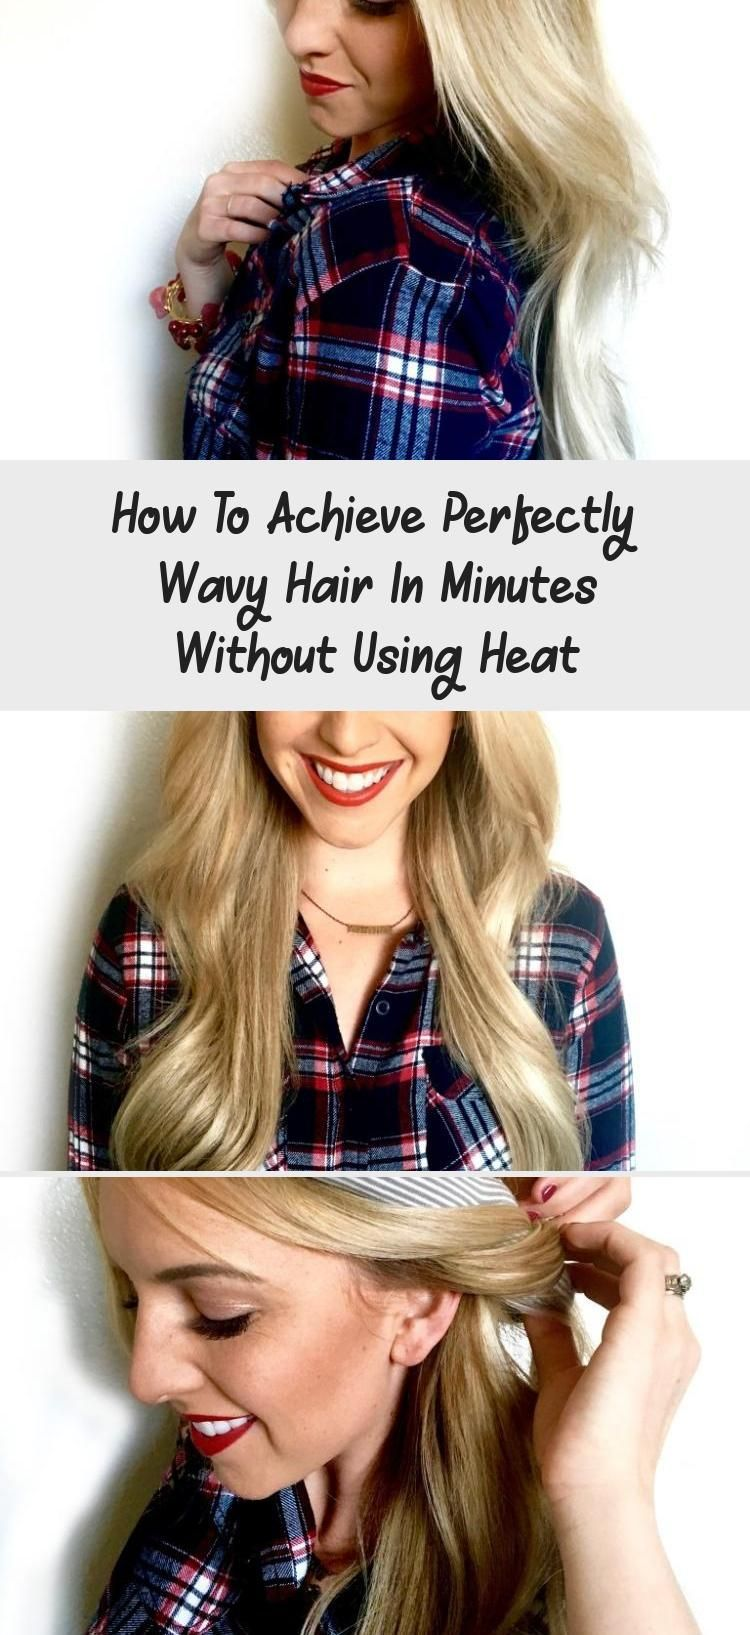 How to achieve perfectly wavy hair in minutes without